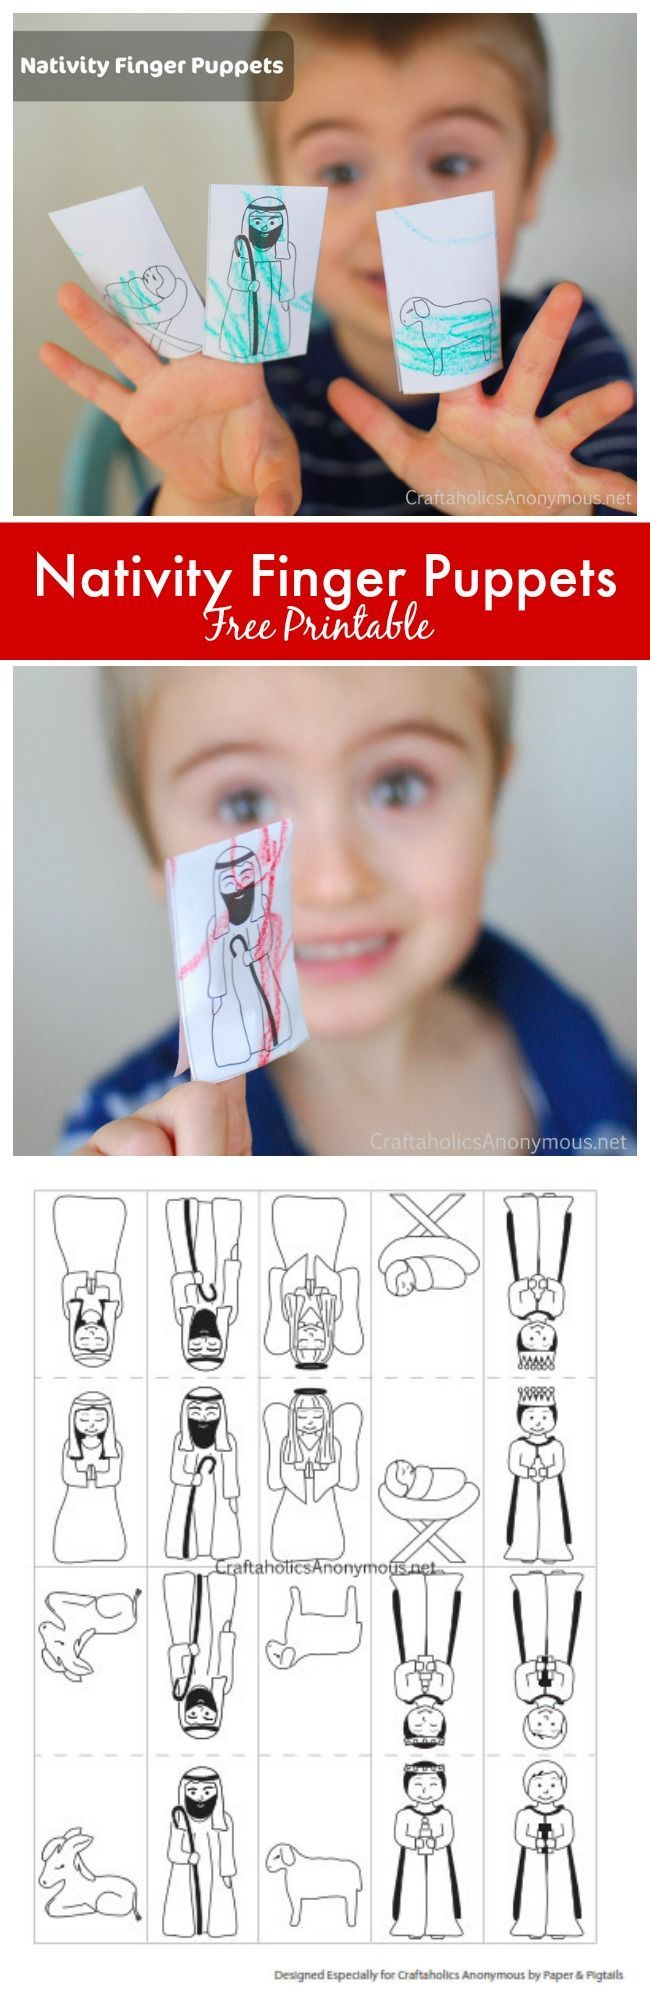 Christmas Nativity Finger Puppets - Free printable. Great Christmas craft idea for kids and preschoolers!